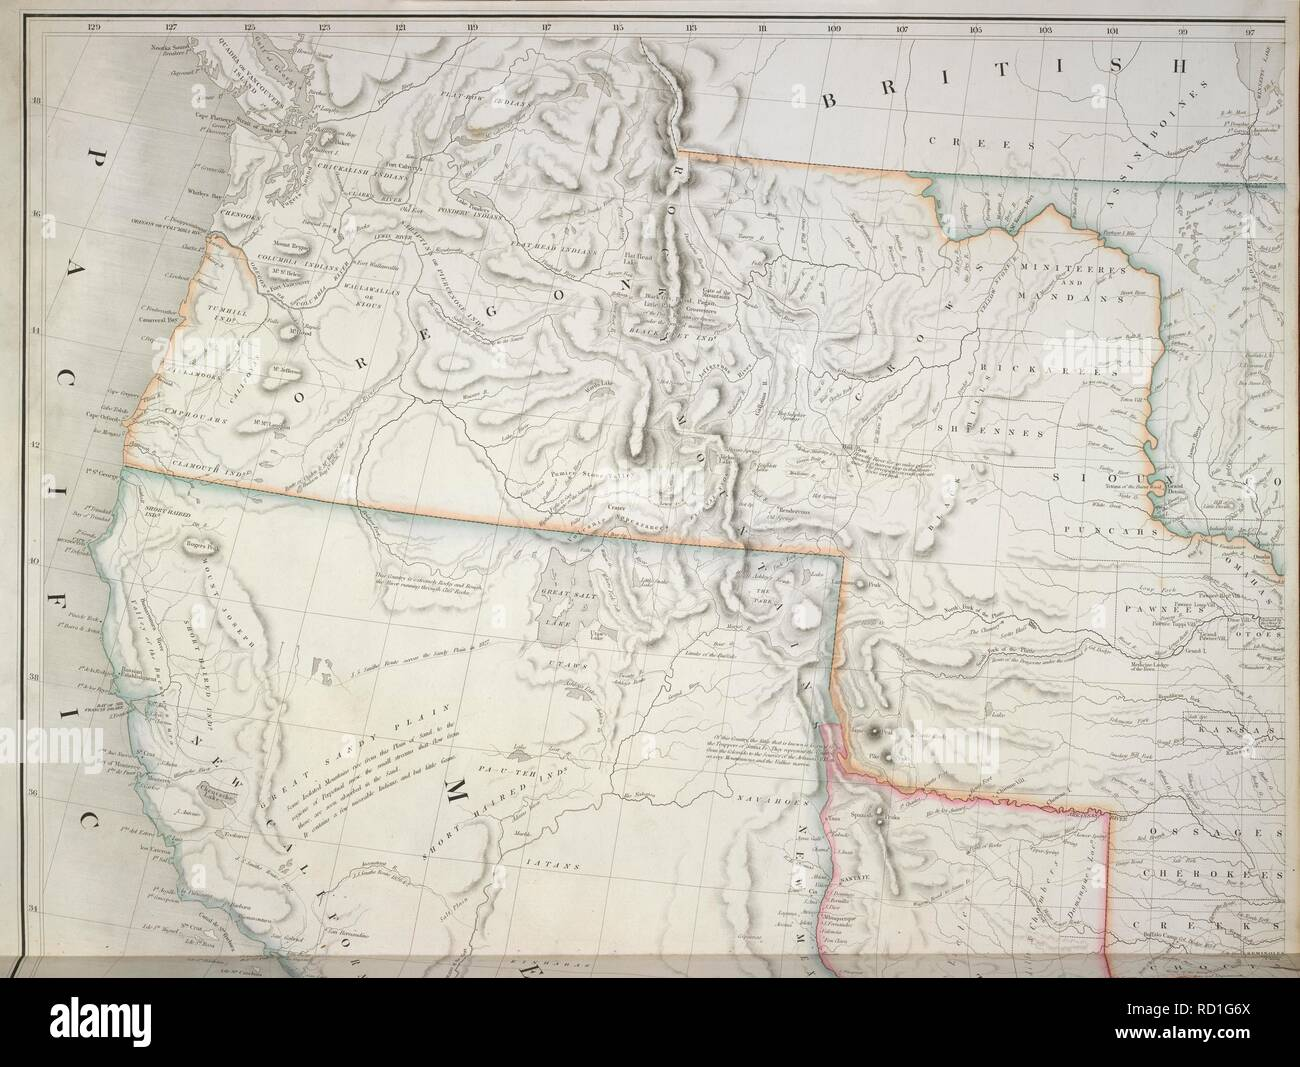 West coast of America. The American Atlas; exhibiting the ...